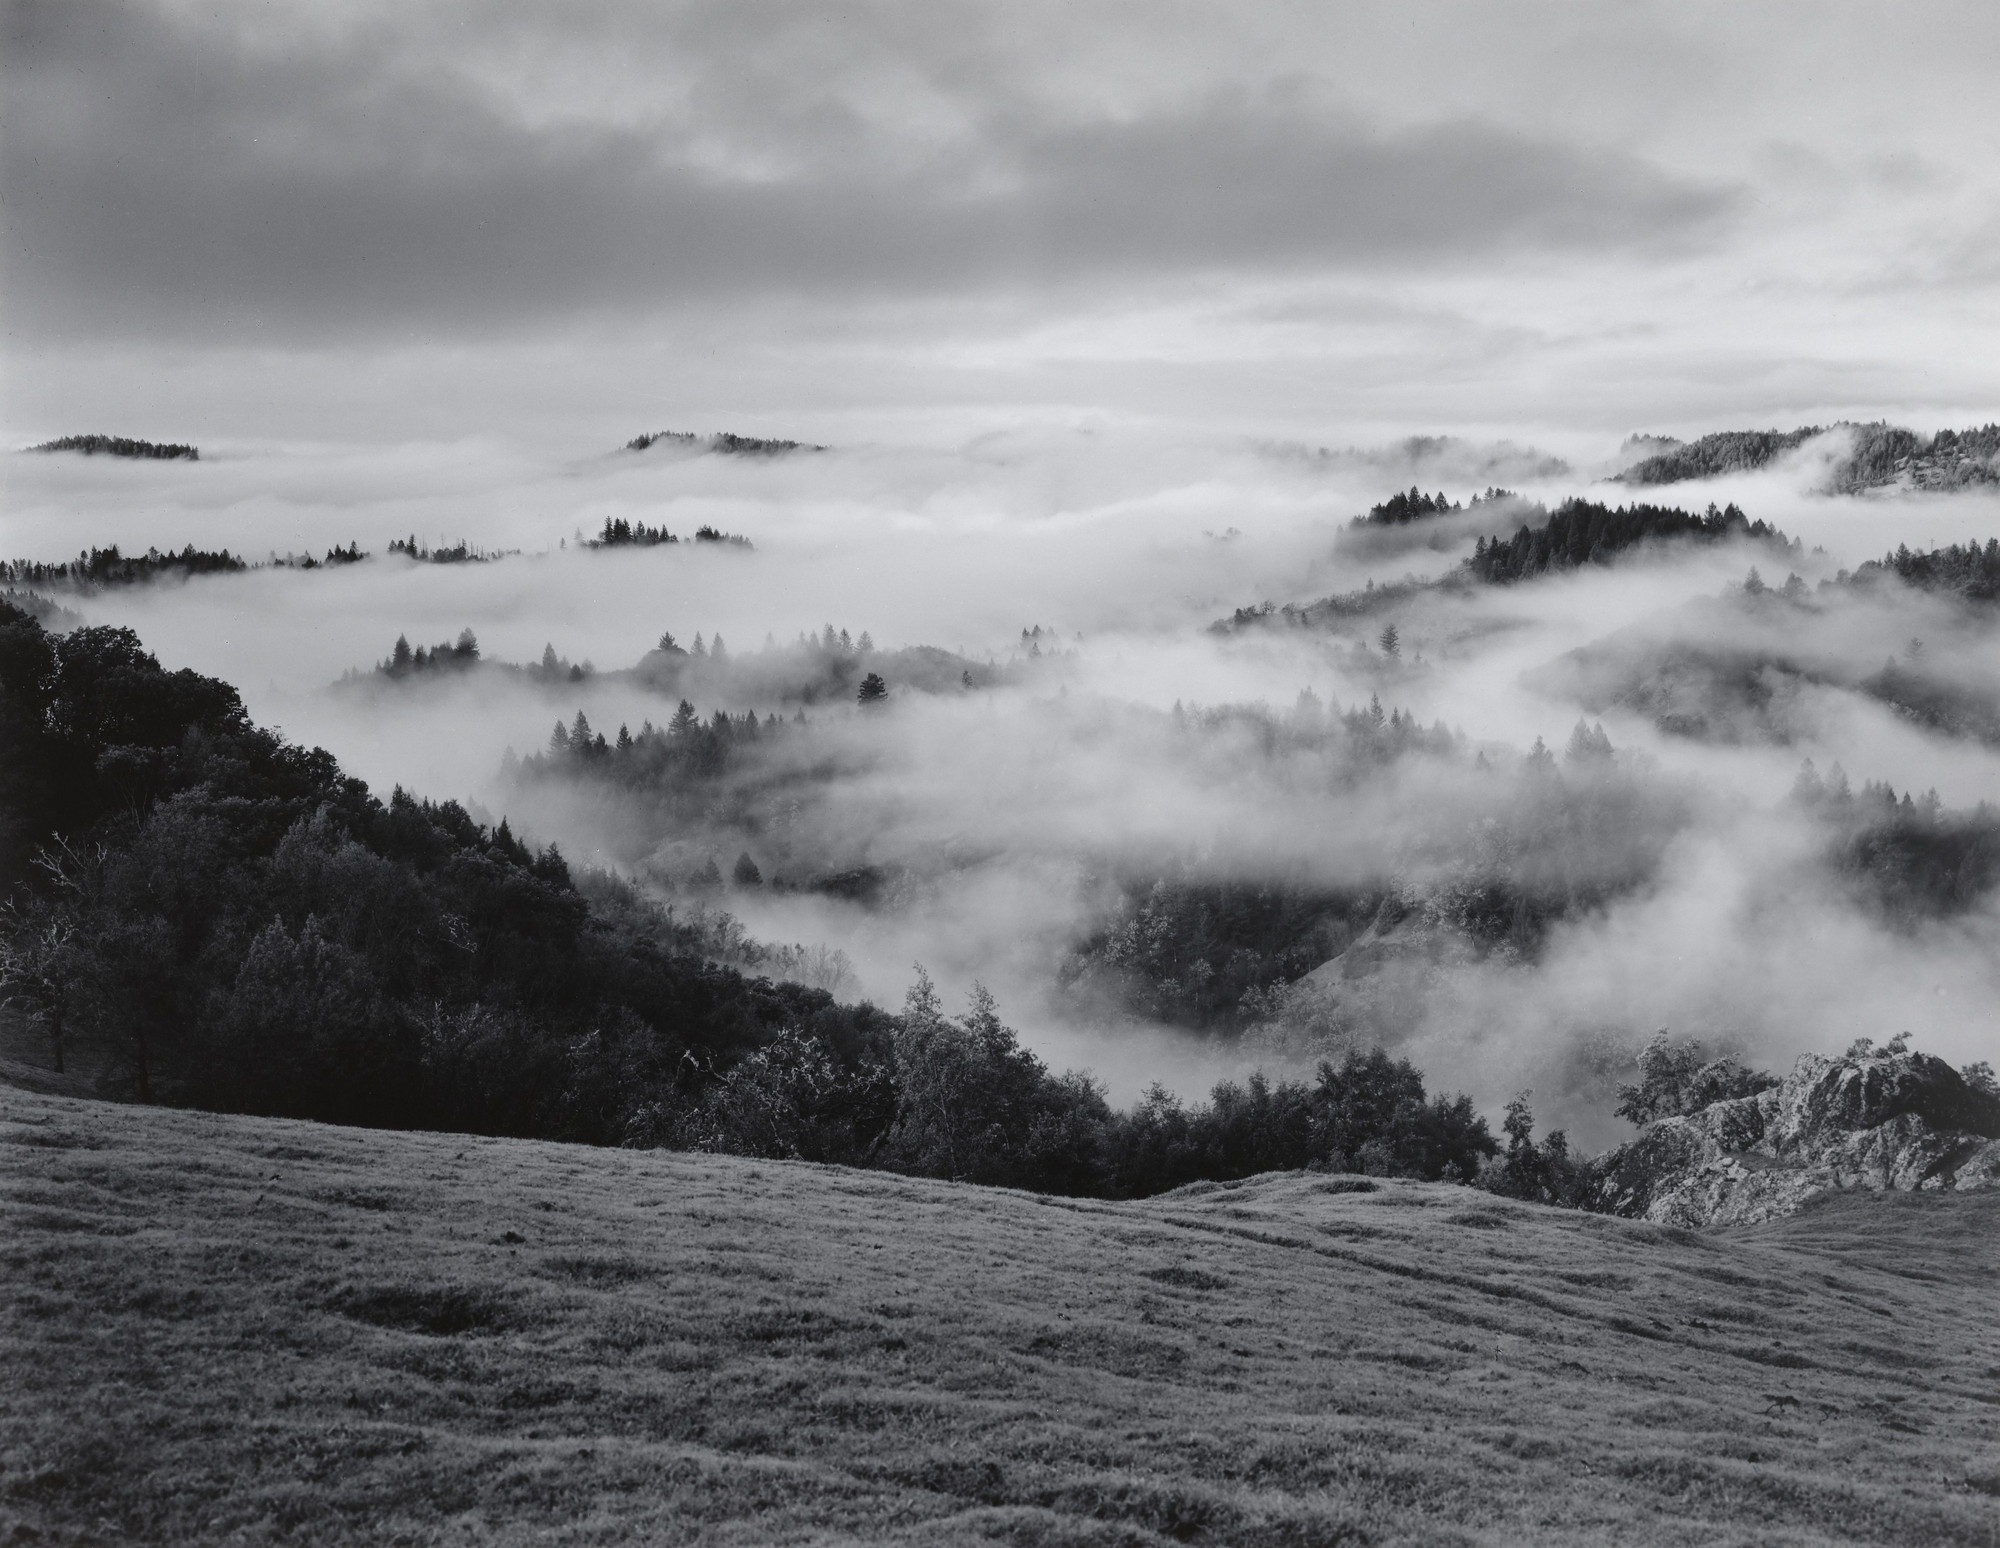 Ansel Adams. Clearing Storm, Sonoma County Hills, California. 1951